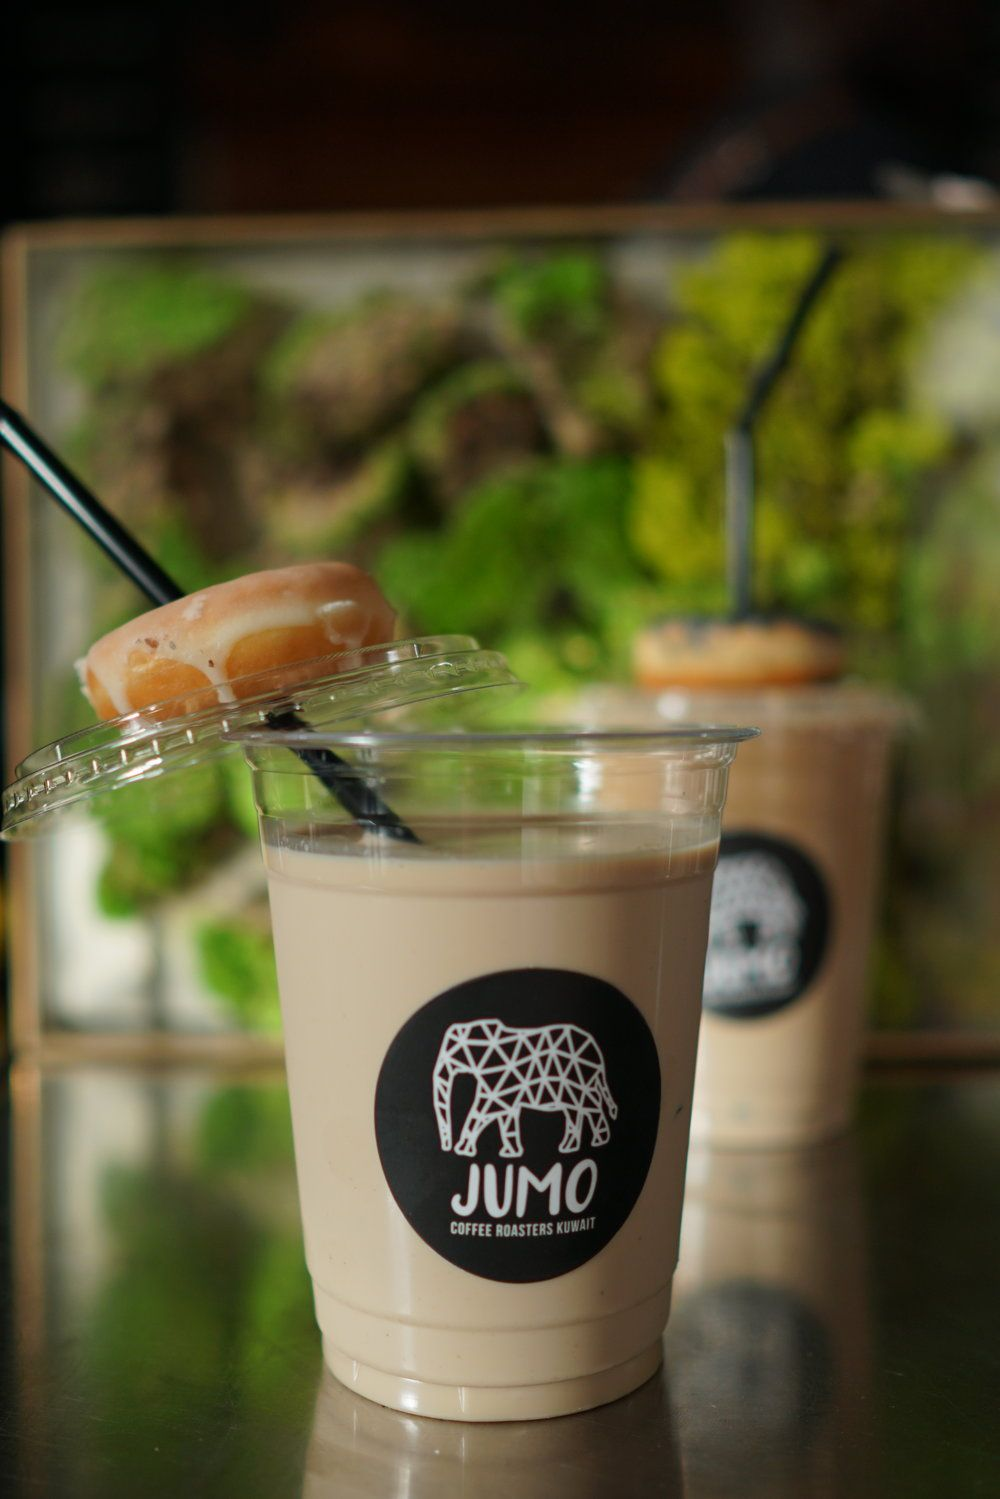 Naughty Latte Coffee And Donuts Coffee Roasters Iced Matcha Latte